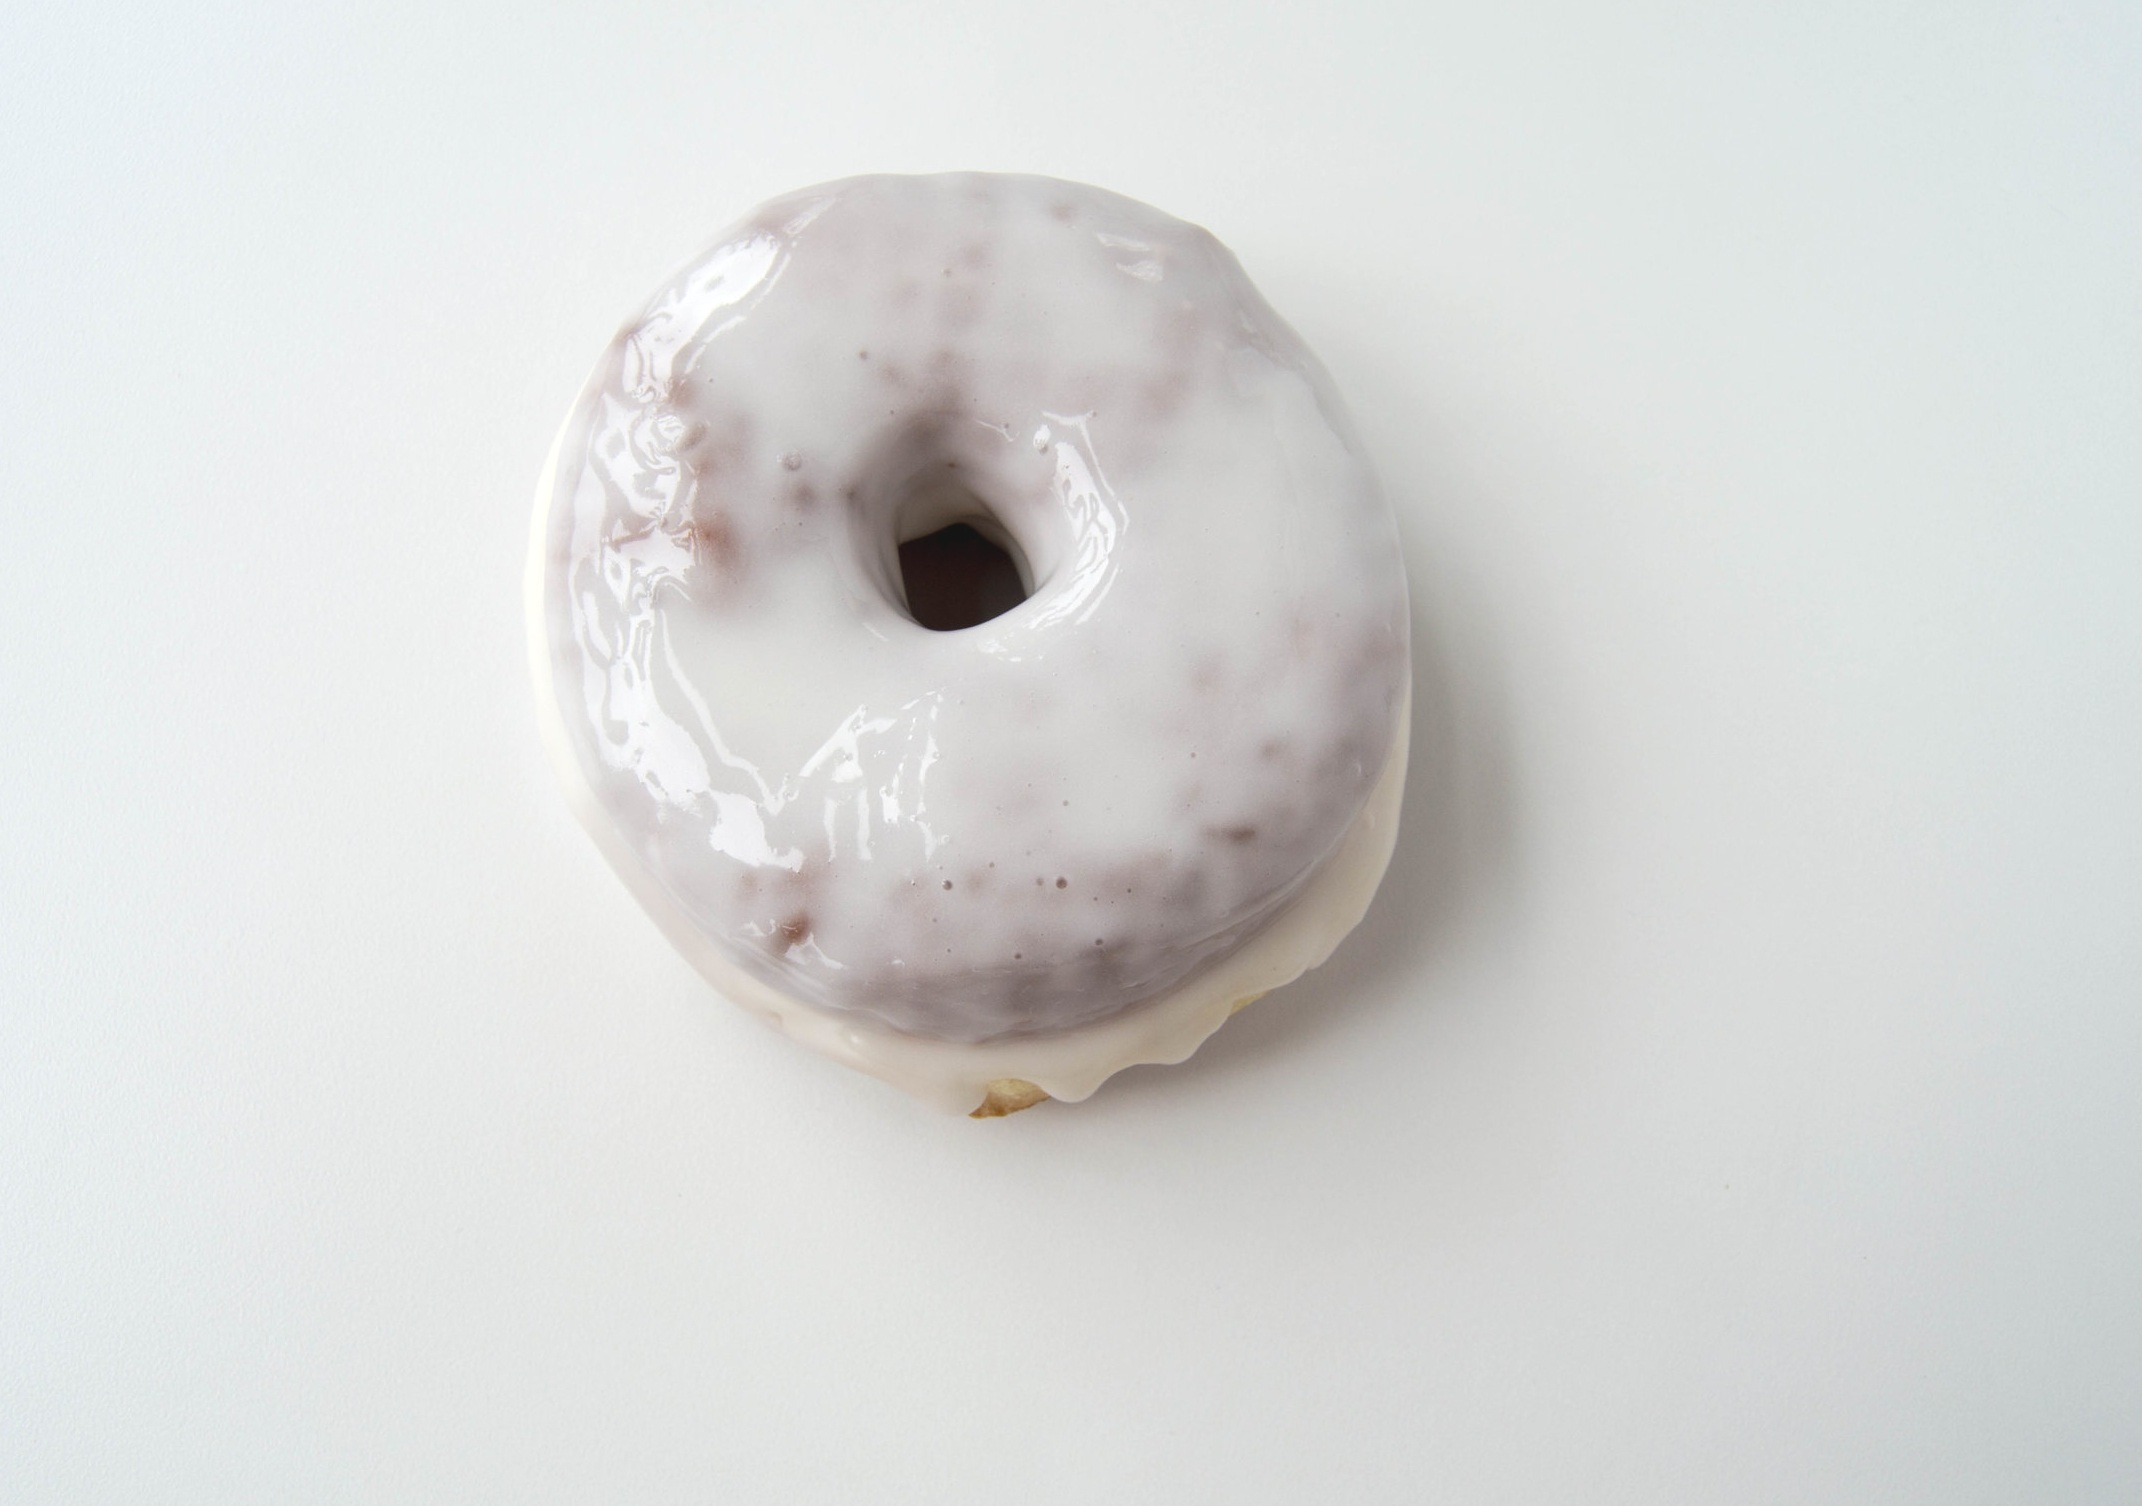 ORIGINAL GLAZED $2.75